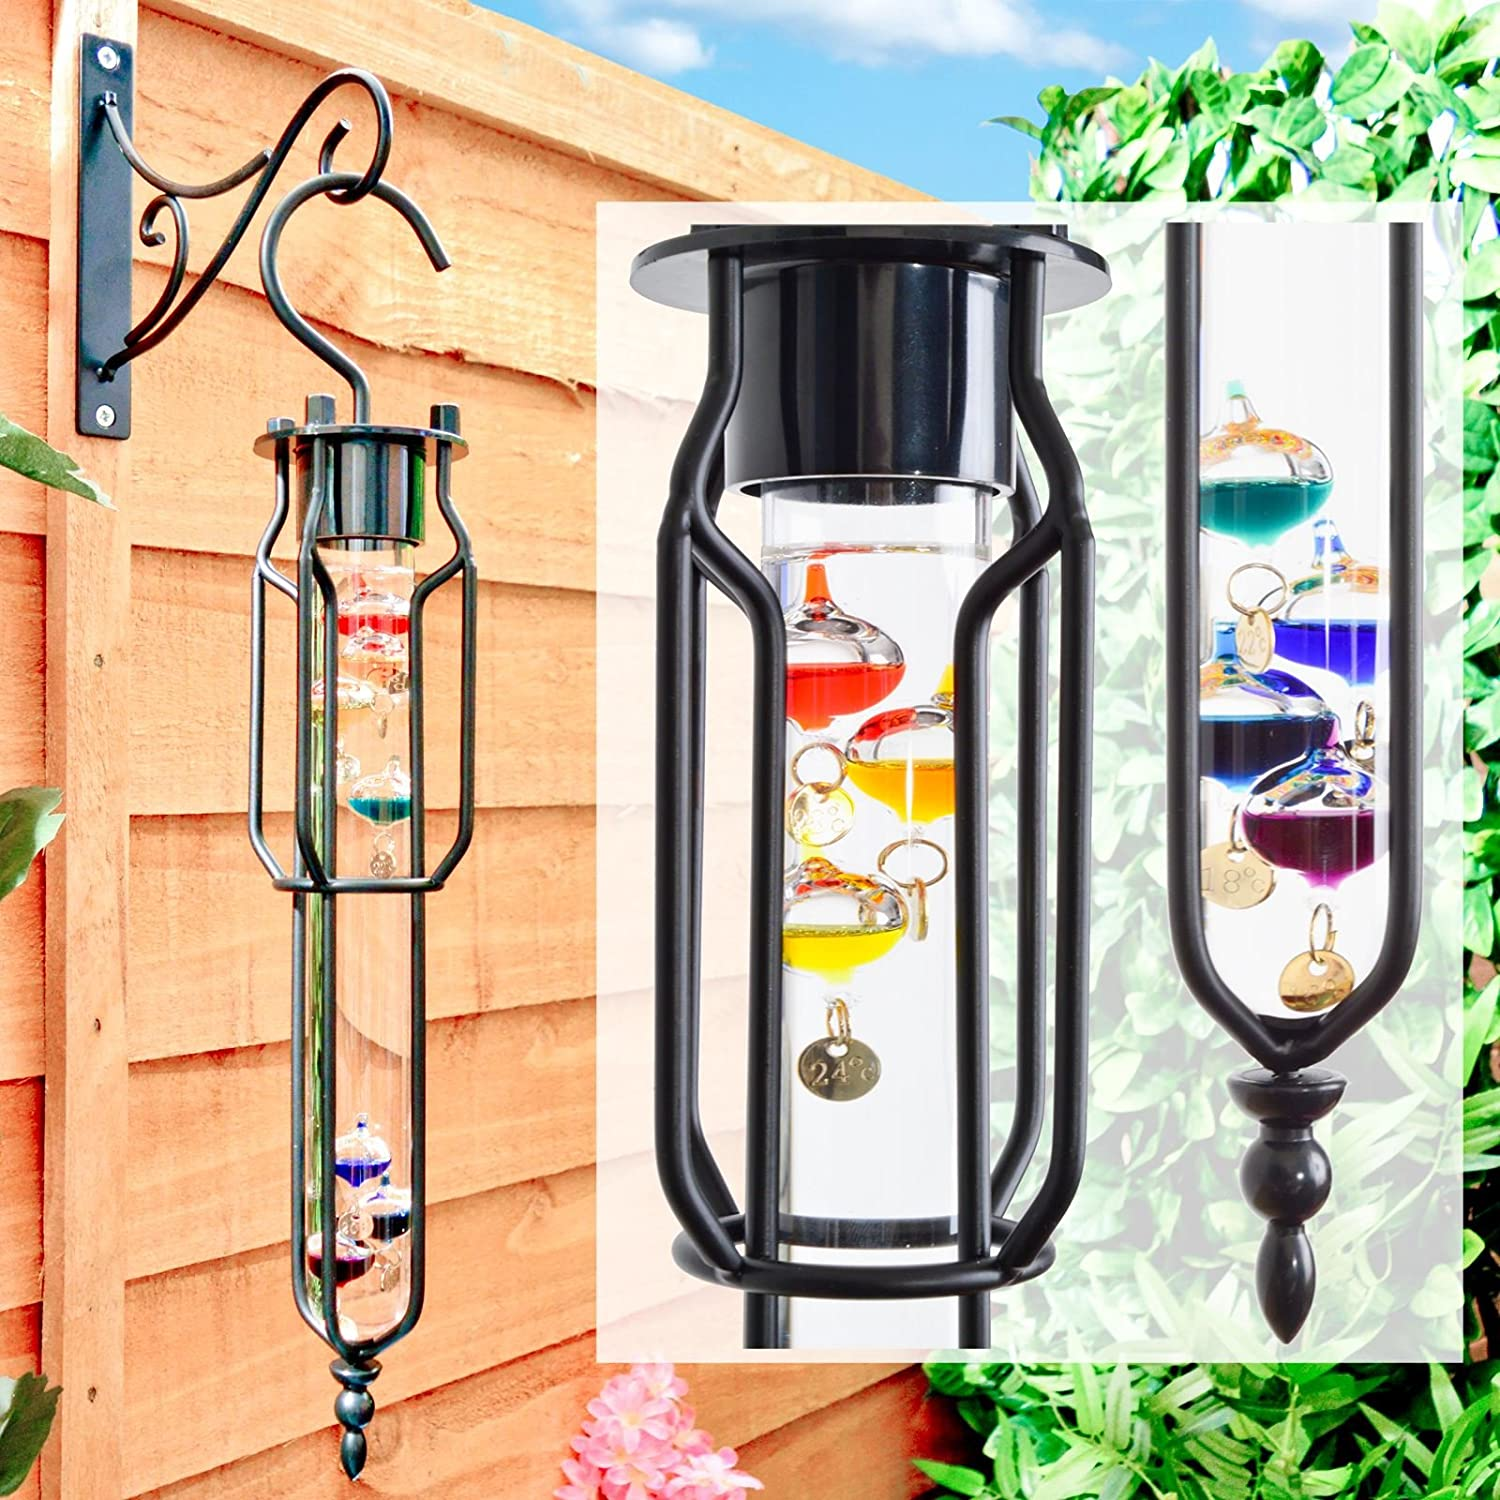 Colourful Hanging Galileo Thermometer For Garden / Home - 7 Globes 16-28C Range Great Ideas By Post